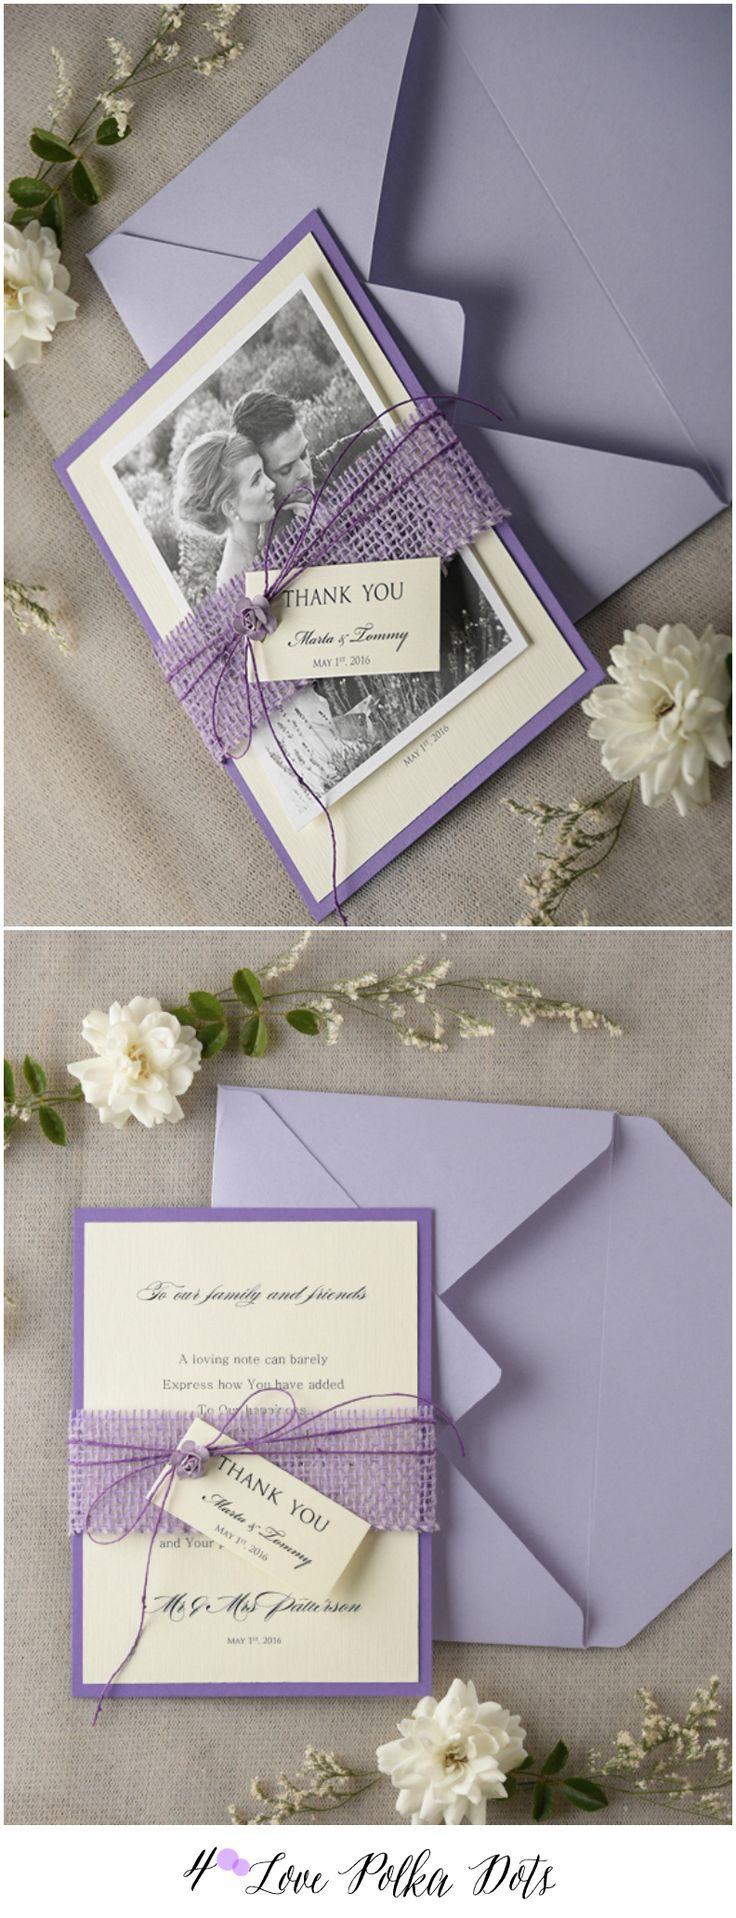 lotus flower wedding invitations%0A Lavender Rustic Thank You Card with your photo    weddingideas  rustic   rusticwedding      Floral WeddingDiy